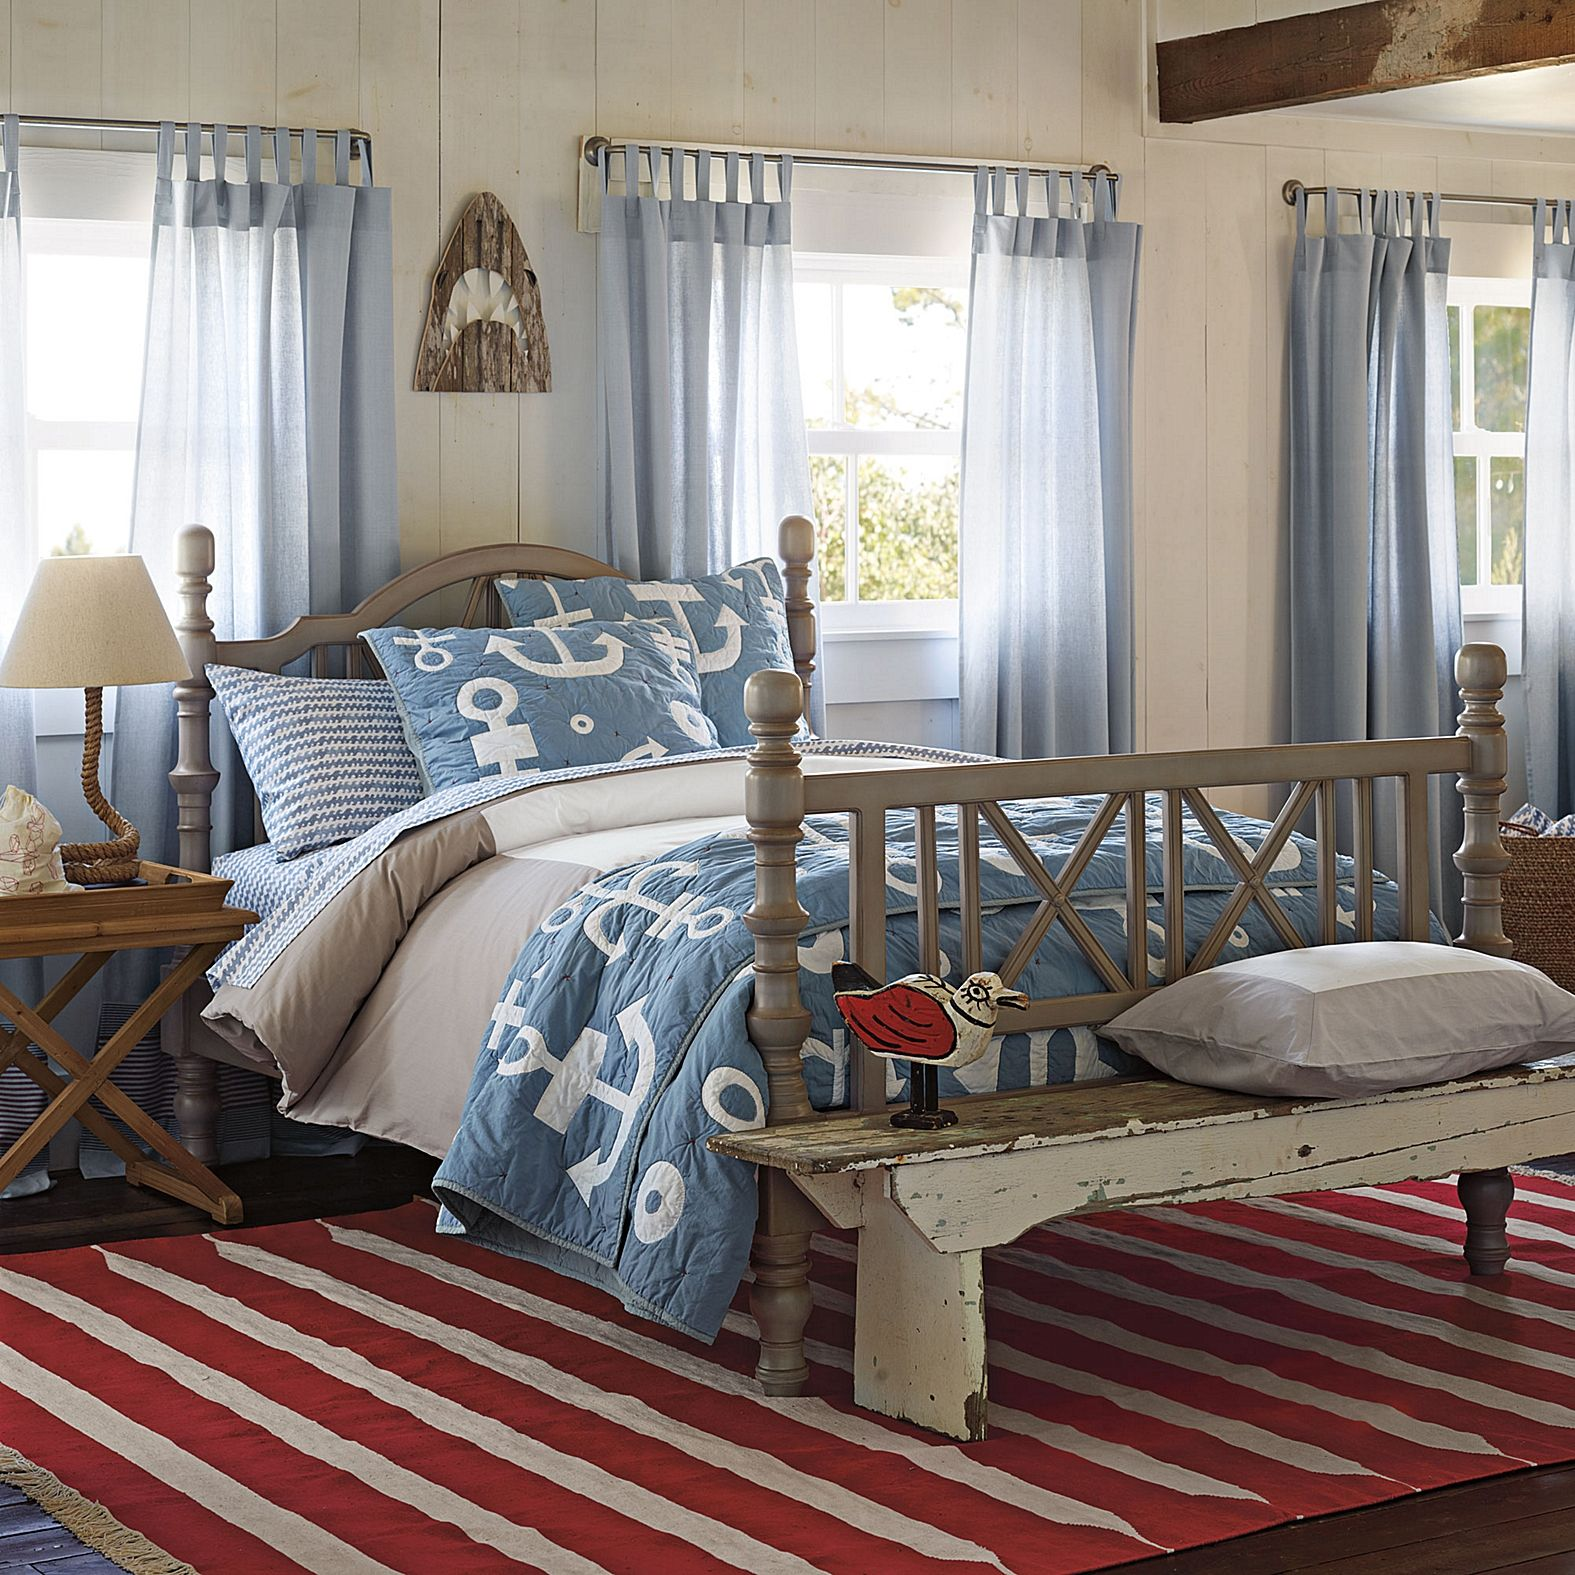 Nautical Anchor Bedding Love The Striped Rug Too Hawaii